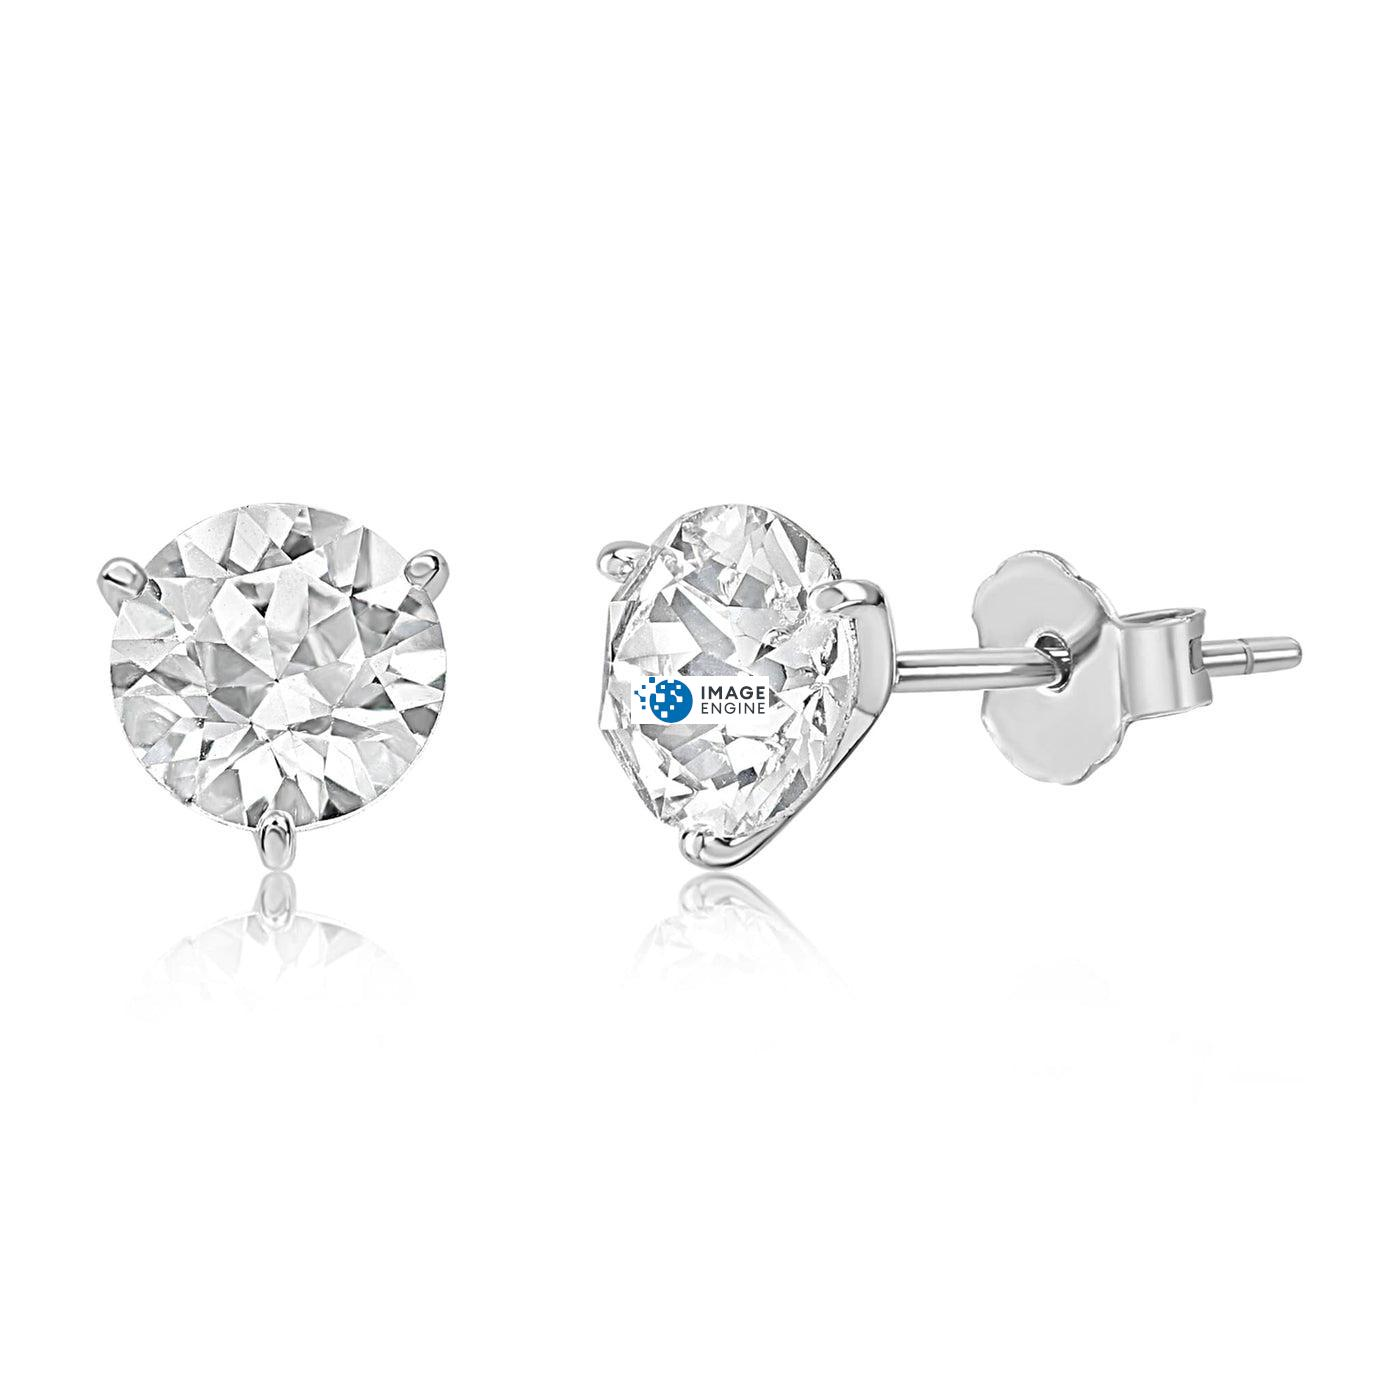 Swarovski Stud Earrings - Facing to the Left Down - 925 Sterling Silver